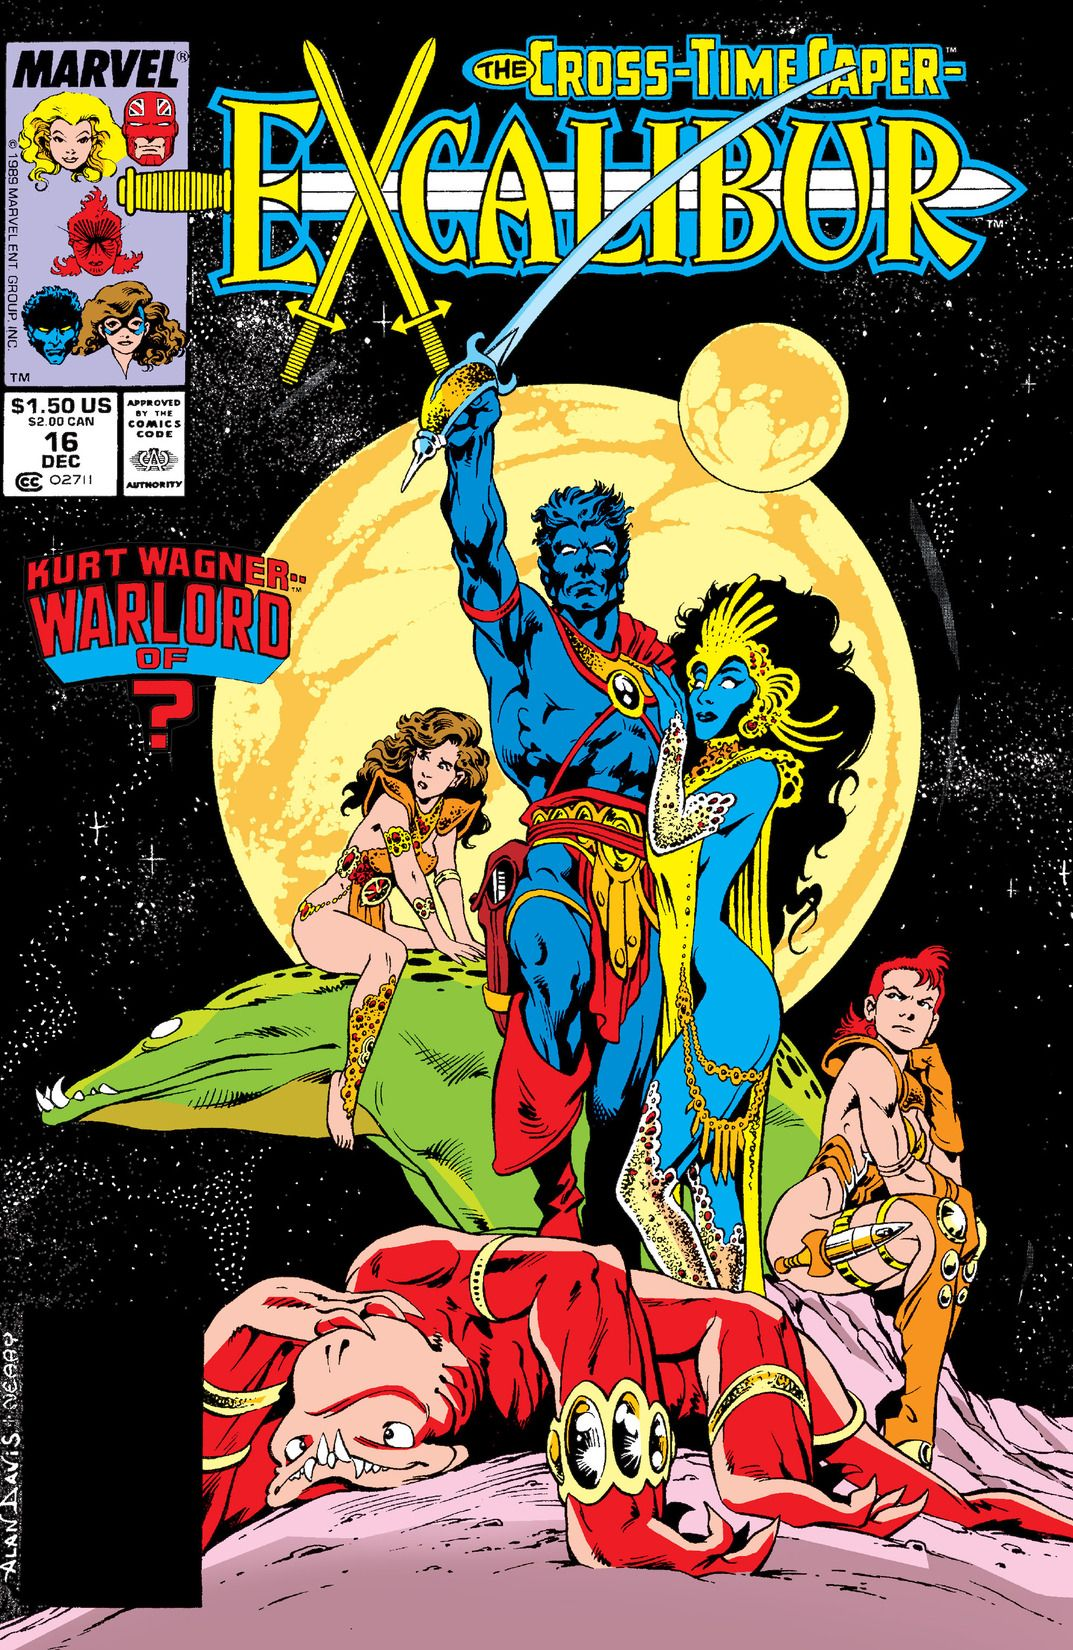 3 Stories Why: 'Excalibur Epic Collection: The Cross-Time Caper' is worth a look